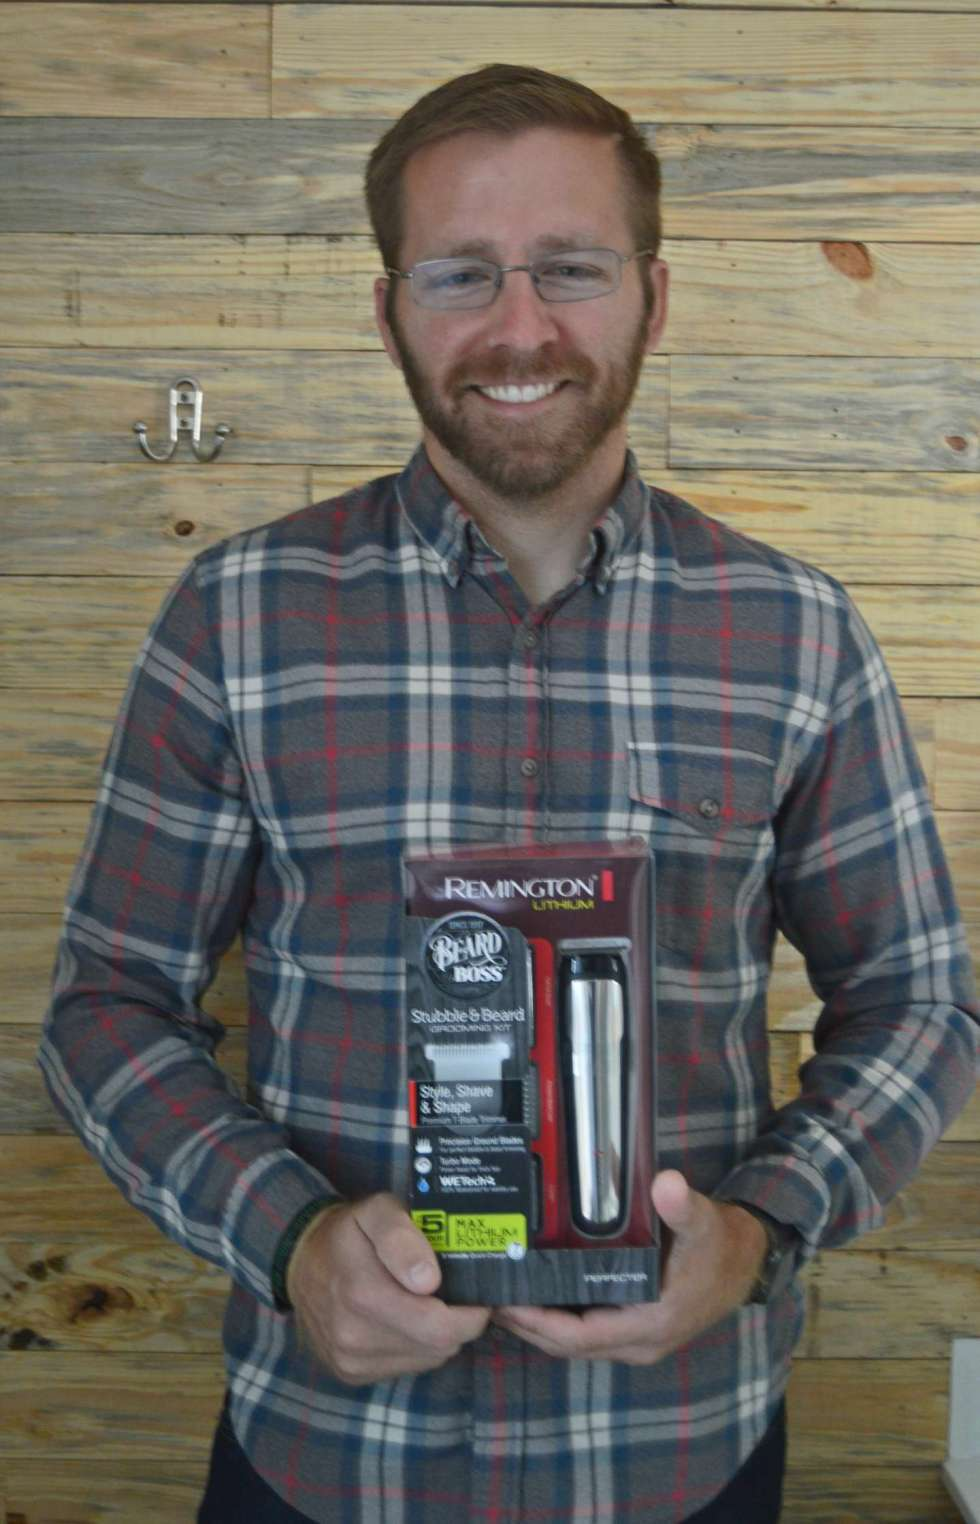 Beard Grooming with Remington for Men - I'm Fixin' To - @mbg0112